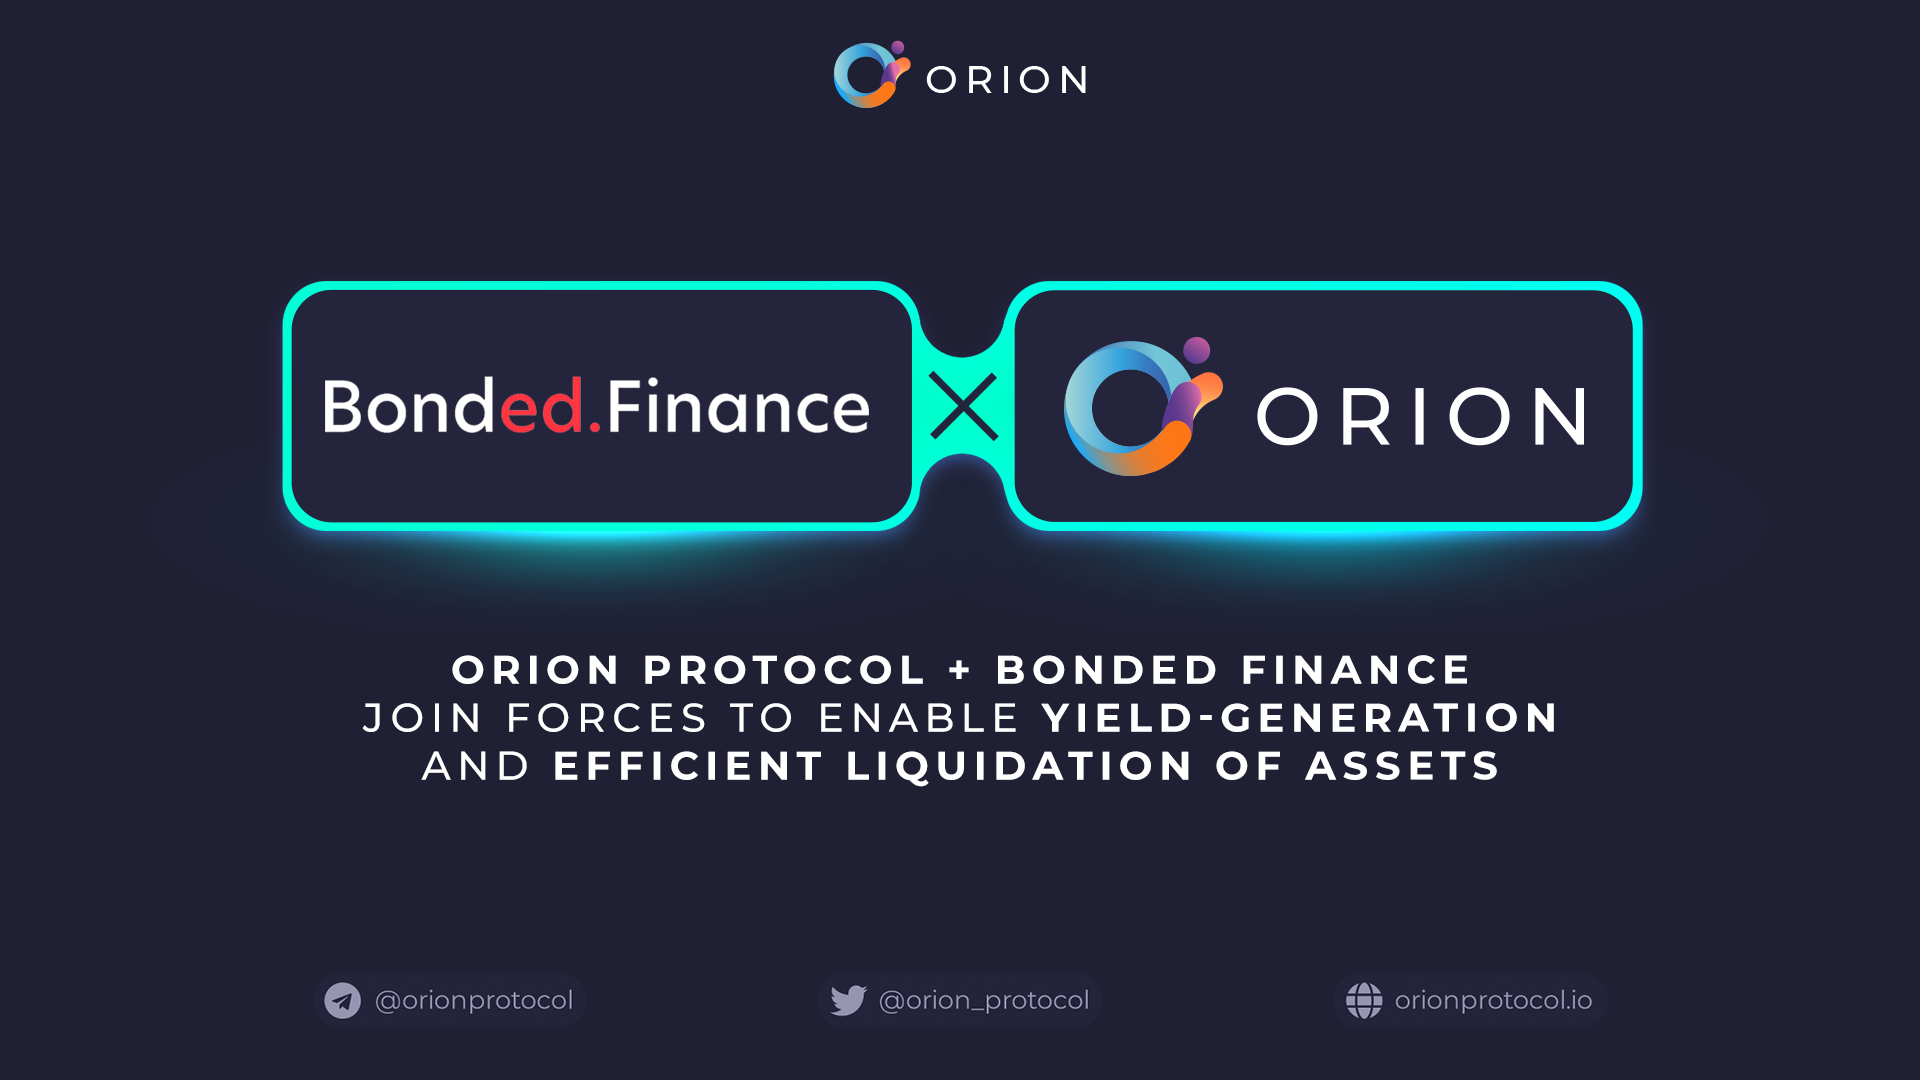 Orion Protocol + Bonded Finance Integration